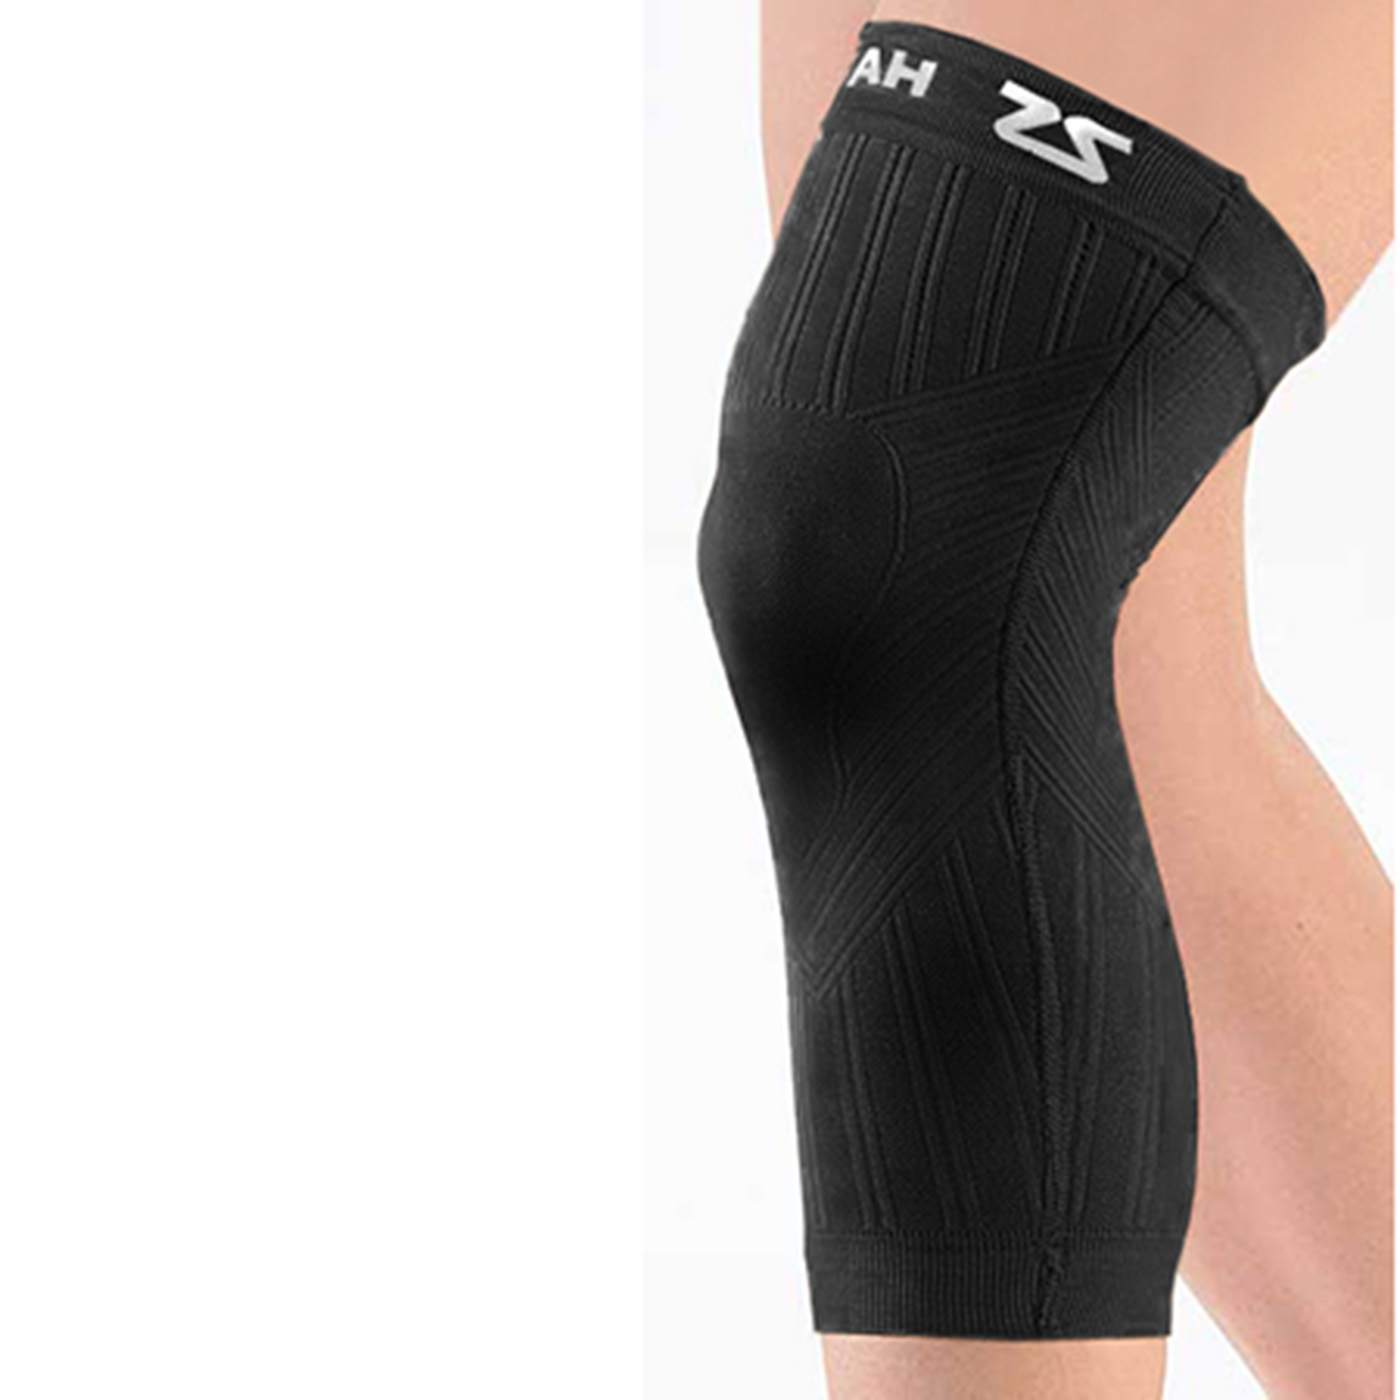 knee sleeves medical supplies home care equipment florida